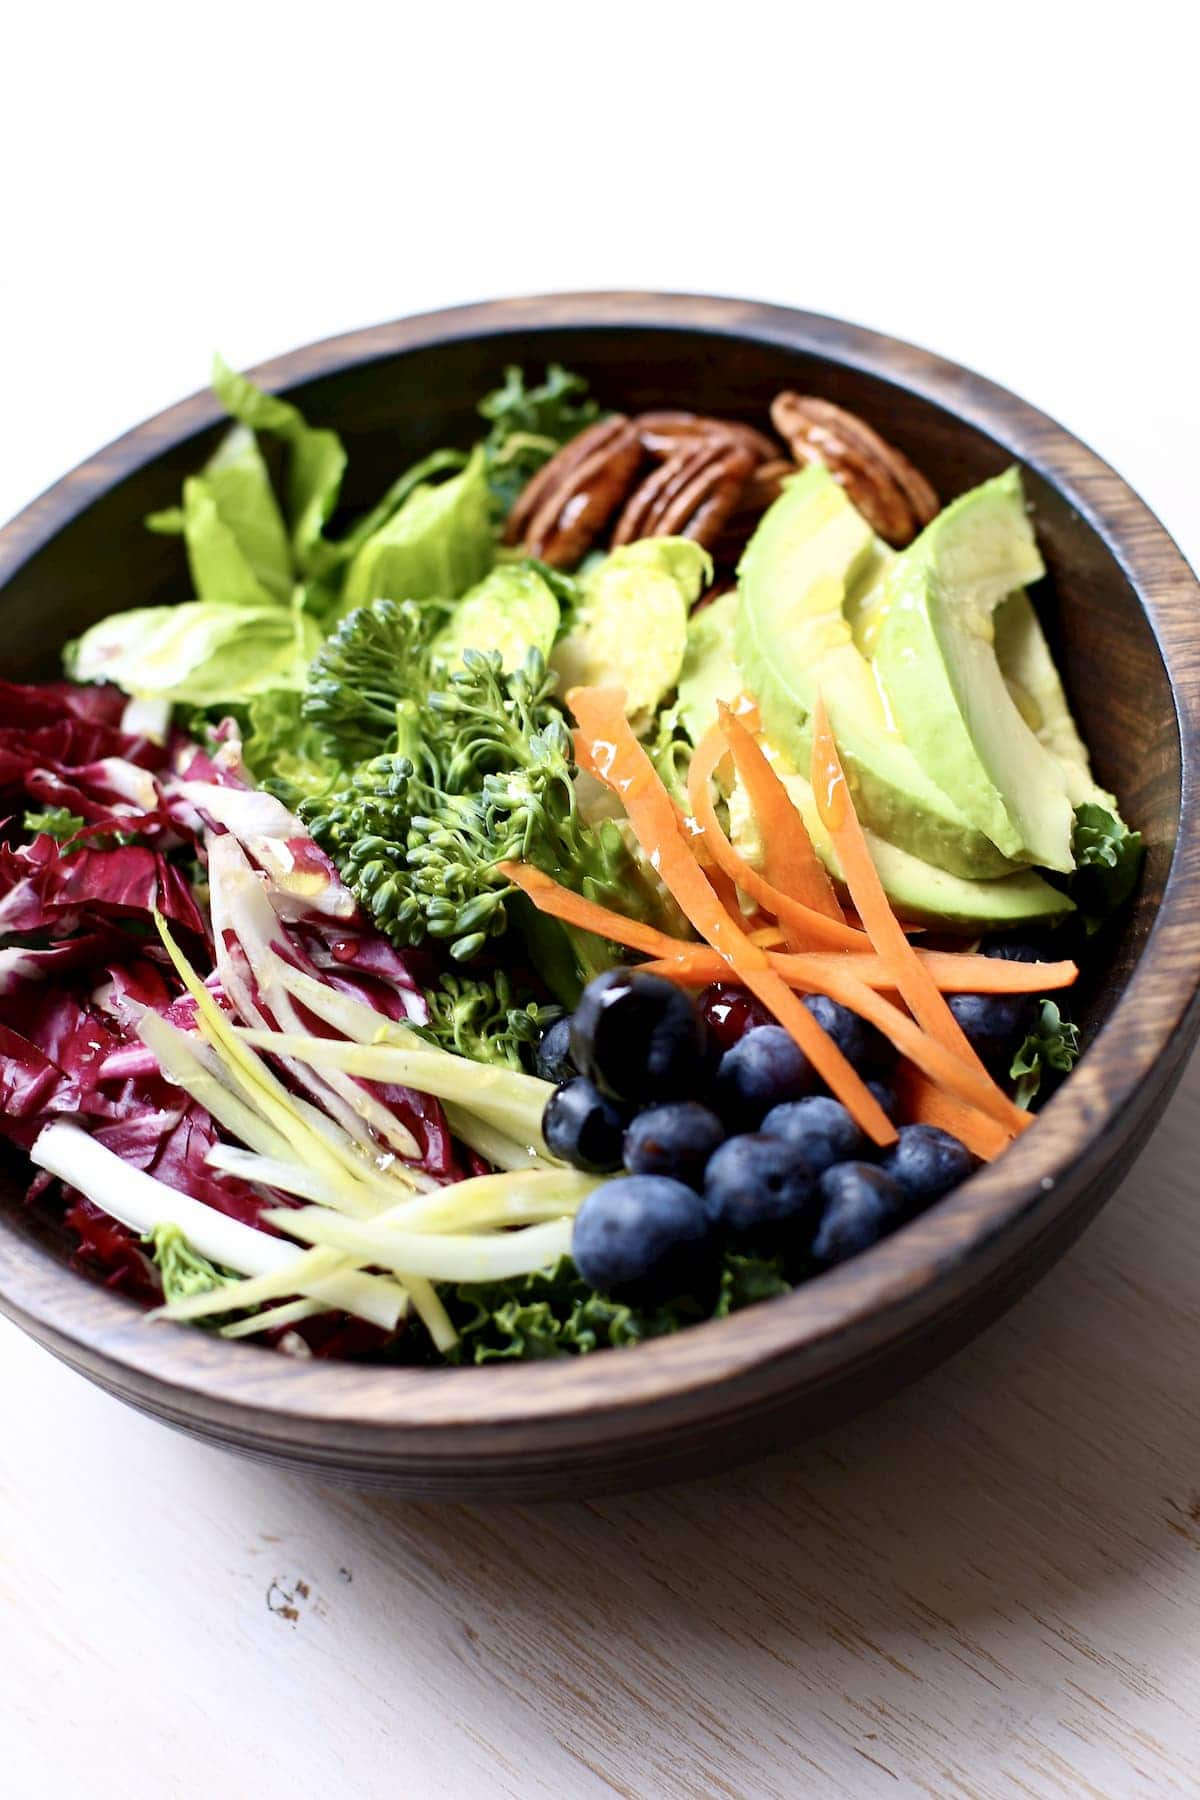 vegetables in a wooden bowl, greens, pecans, avocado, blueberries, pecans and carrots.